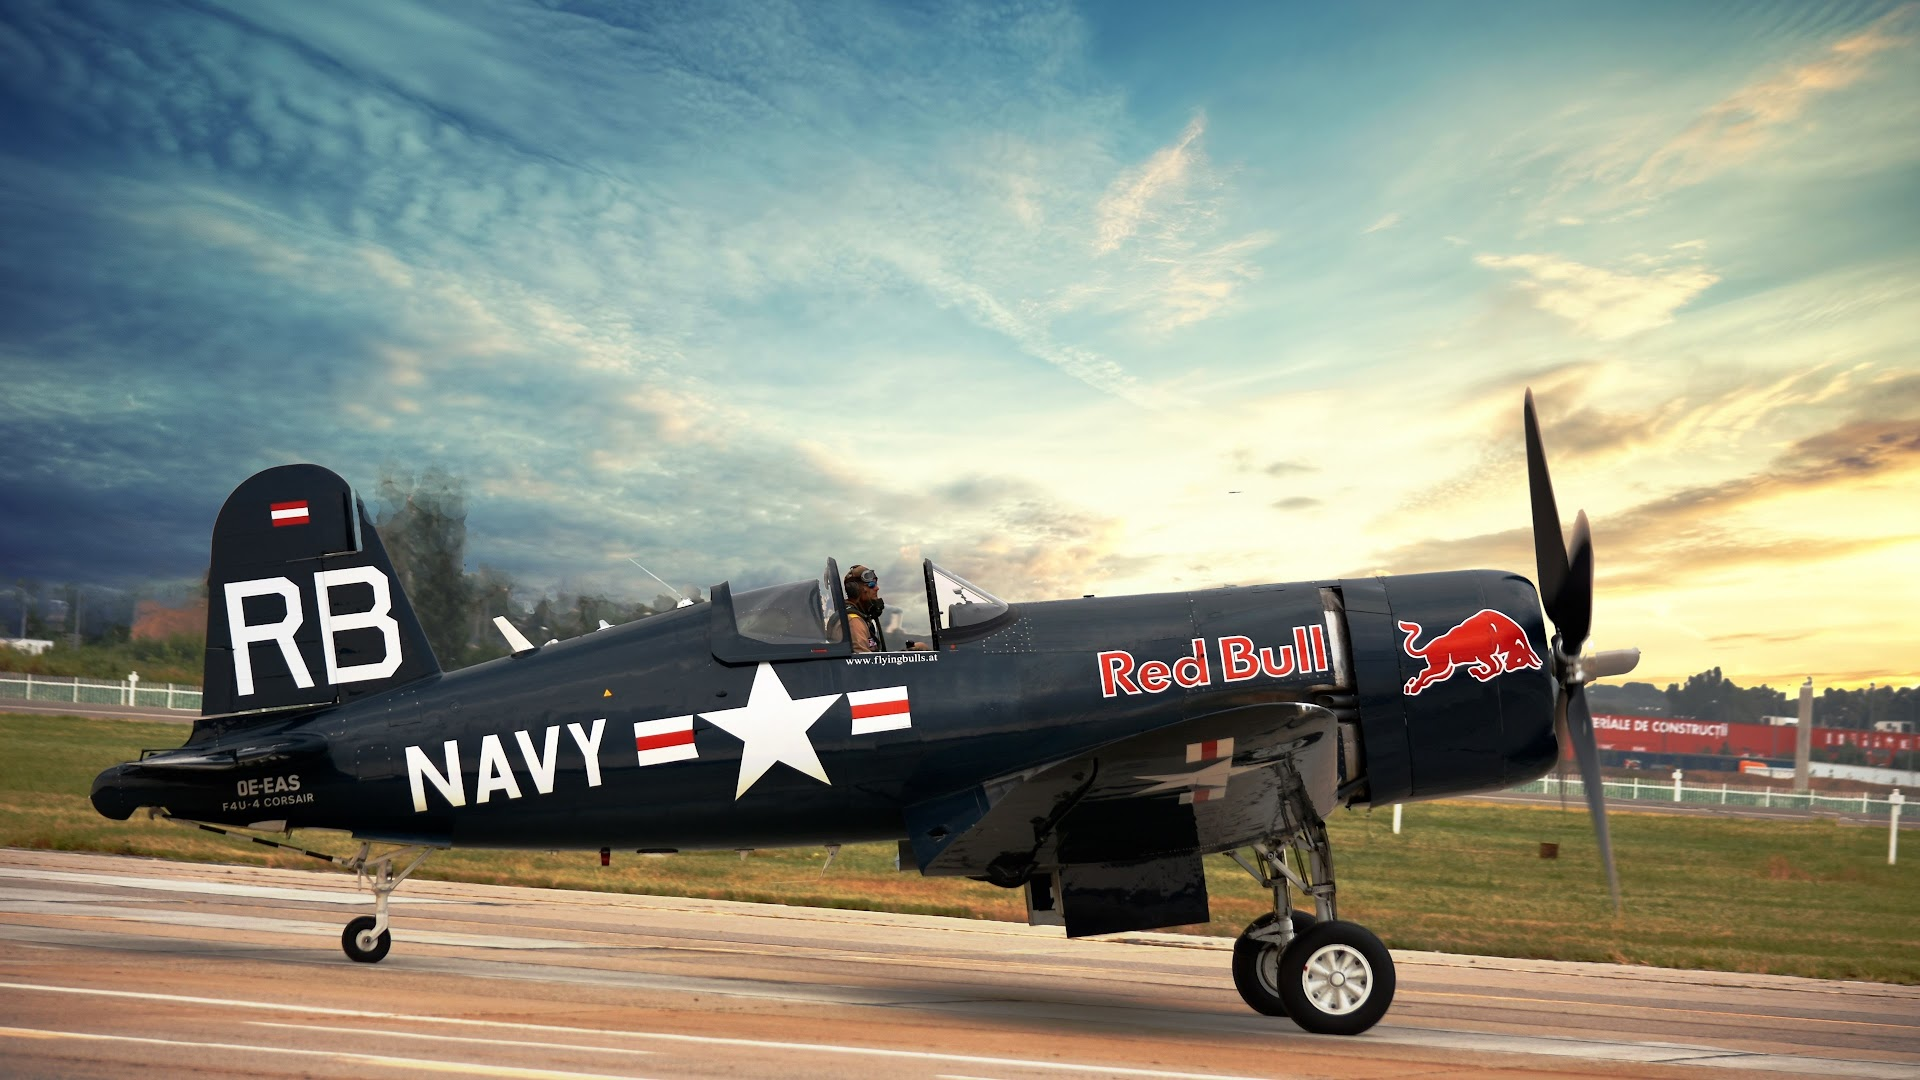 F4u corsair wallpaper images for Corsair wallpaper 4k